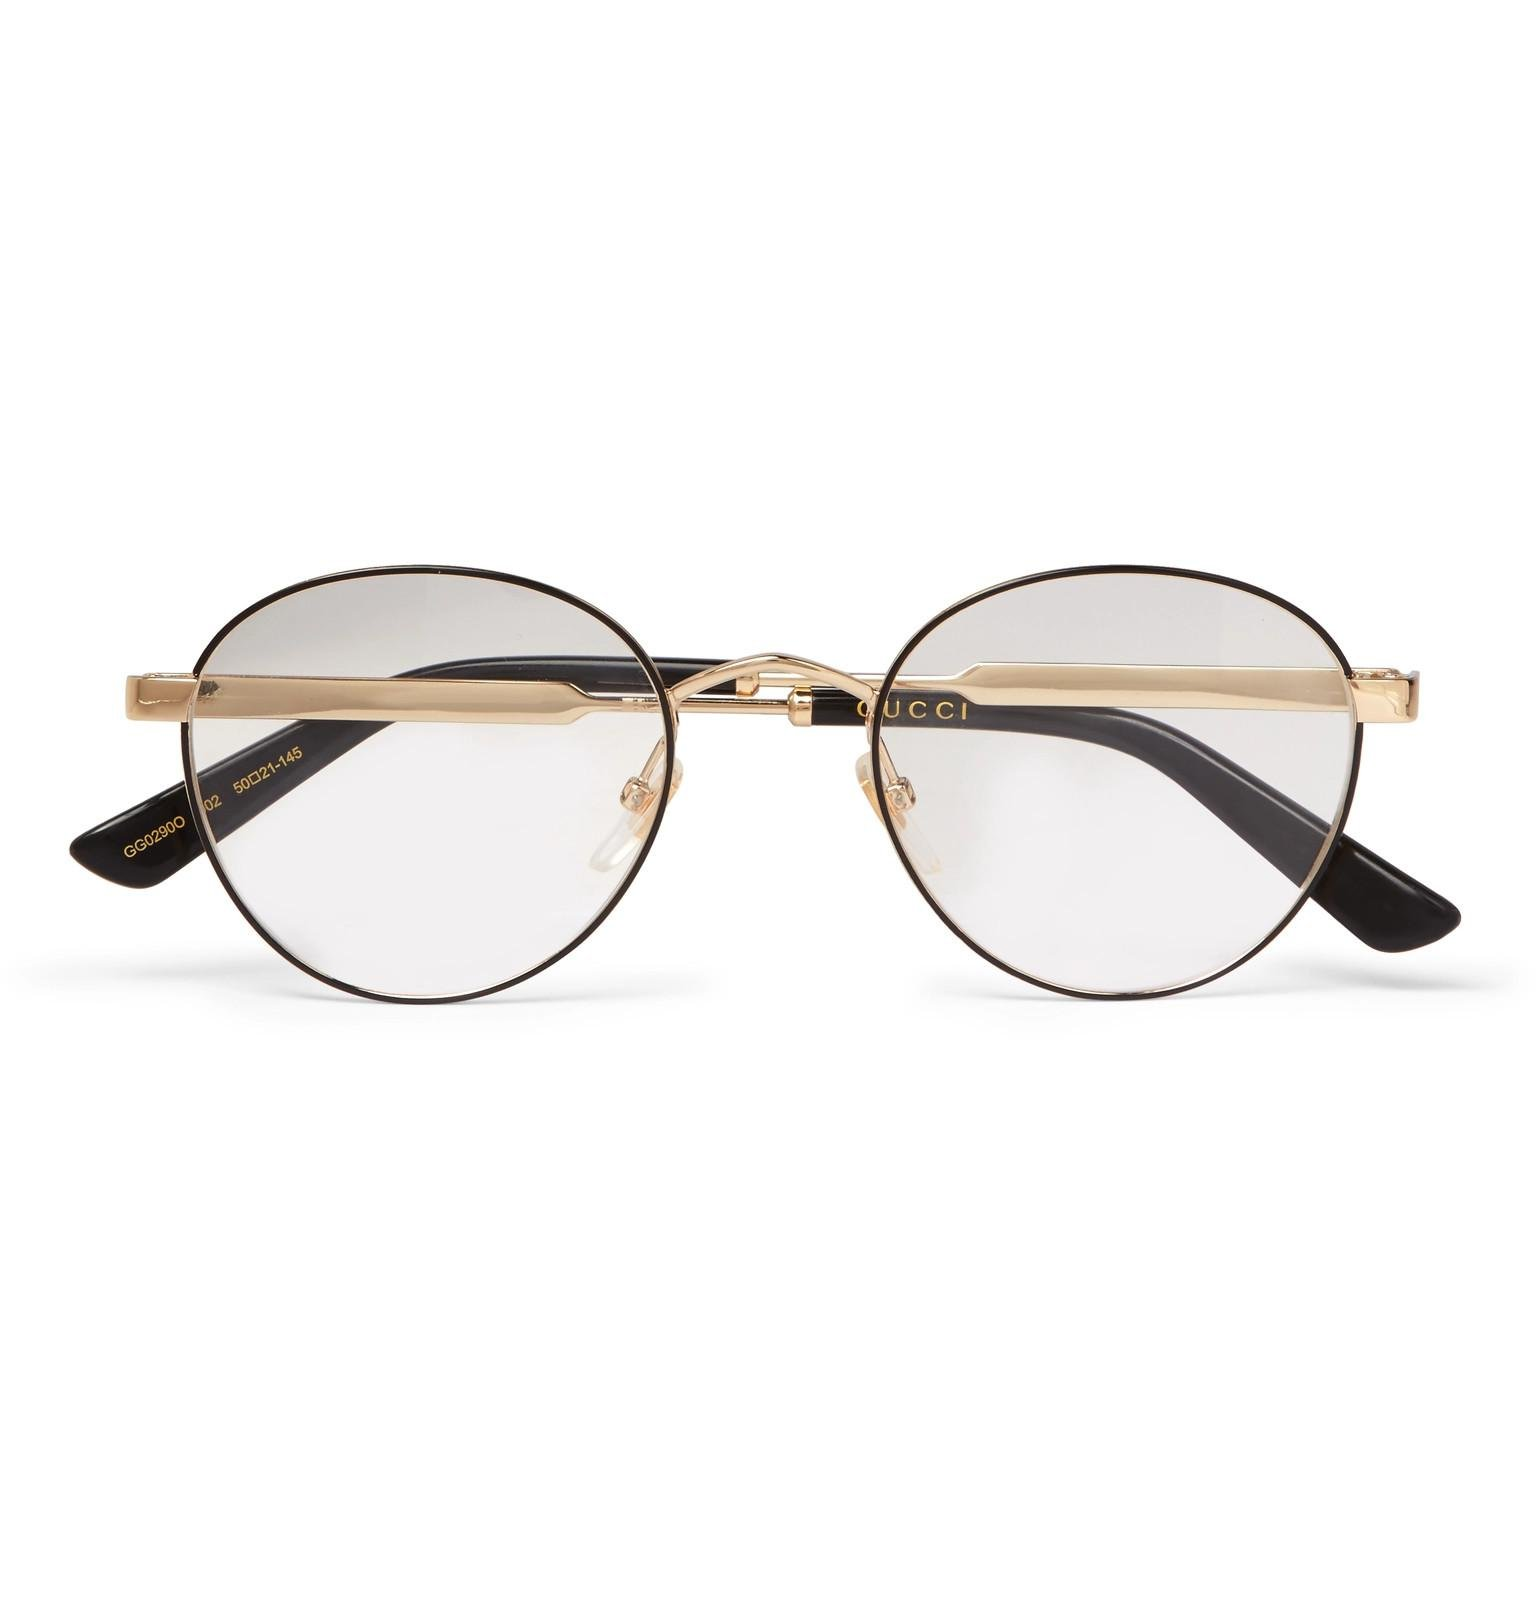 8ad29b6787 Lyst - Gucci Round-frame Enamelled Gold-tone Optical Glasses in ...